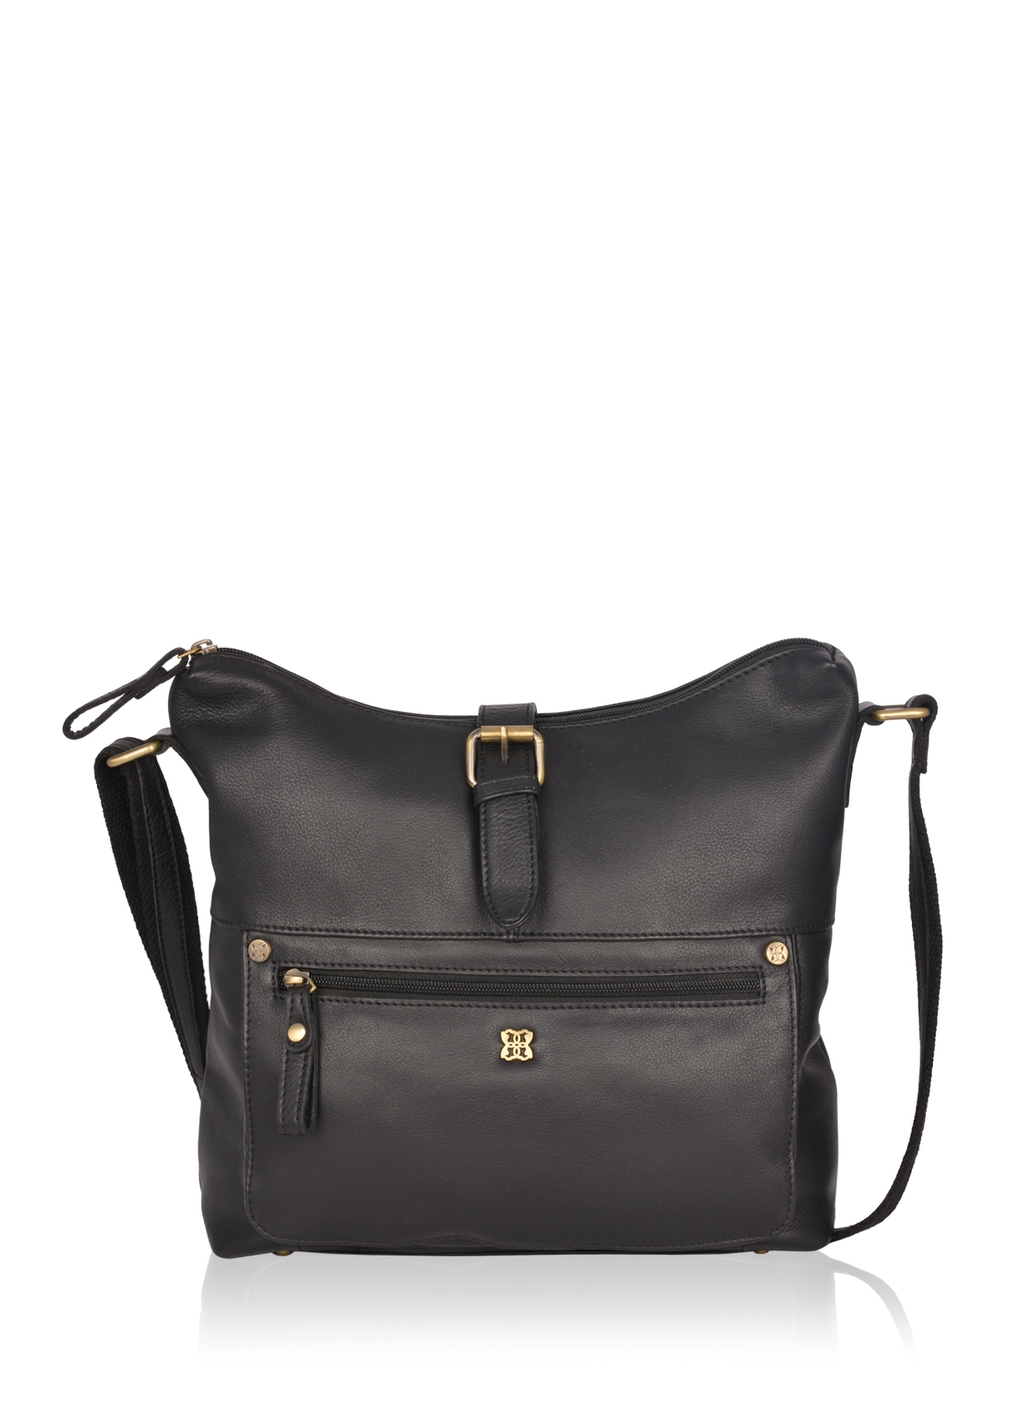 Rickerby Leather Shoulder Bag in Black